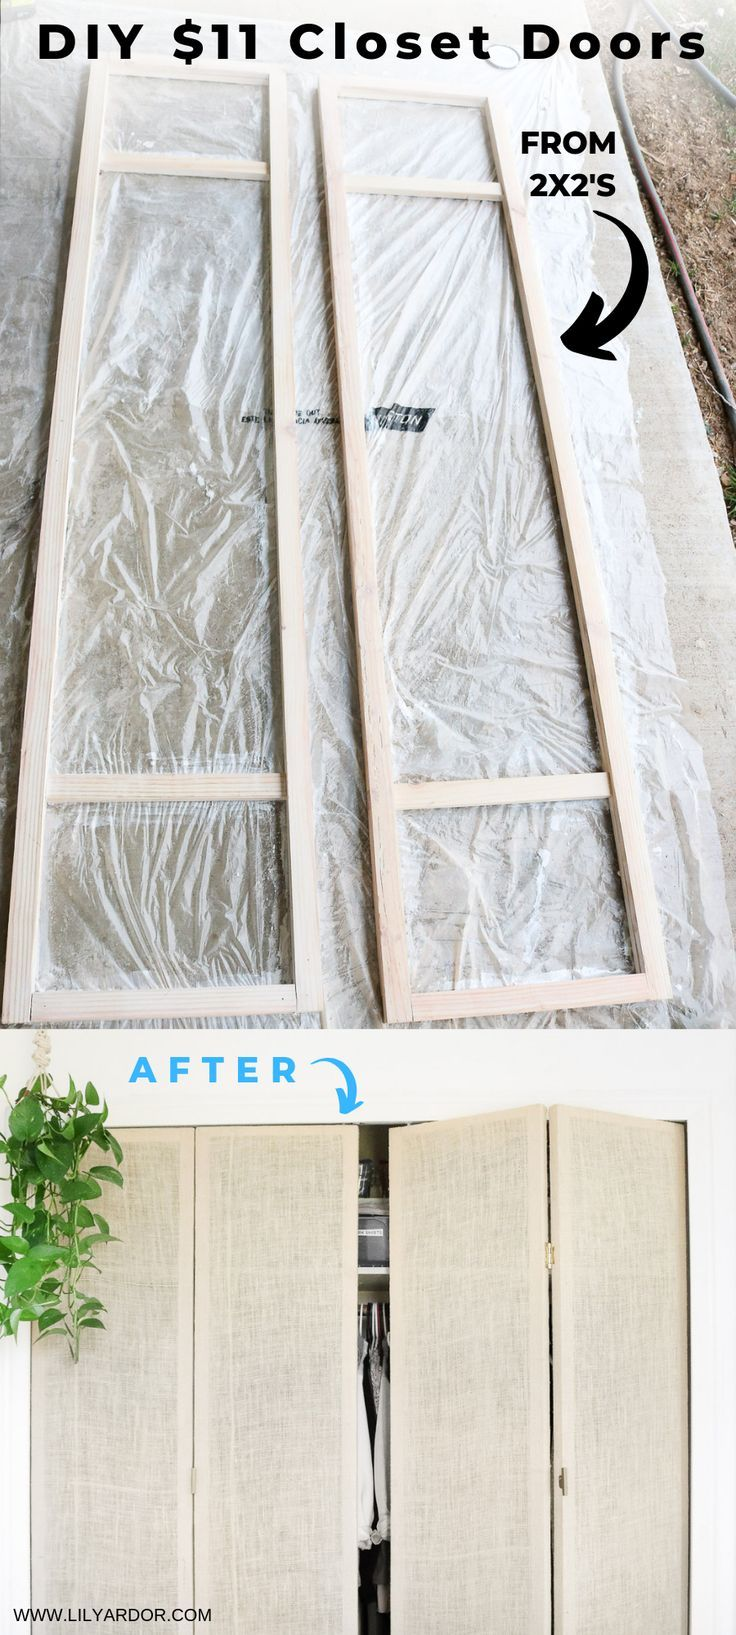 DIY Closet Doors under $50 #diyfurniture